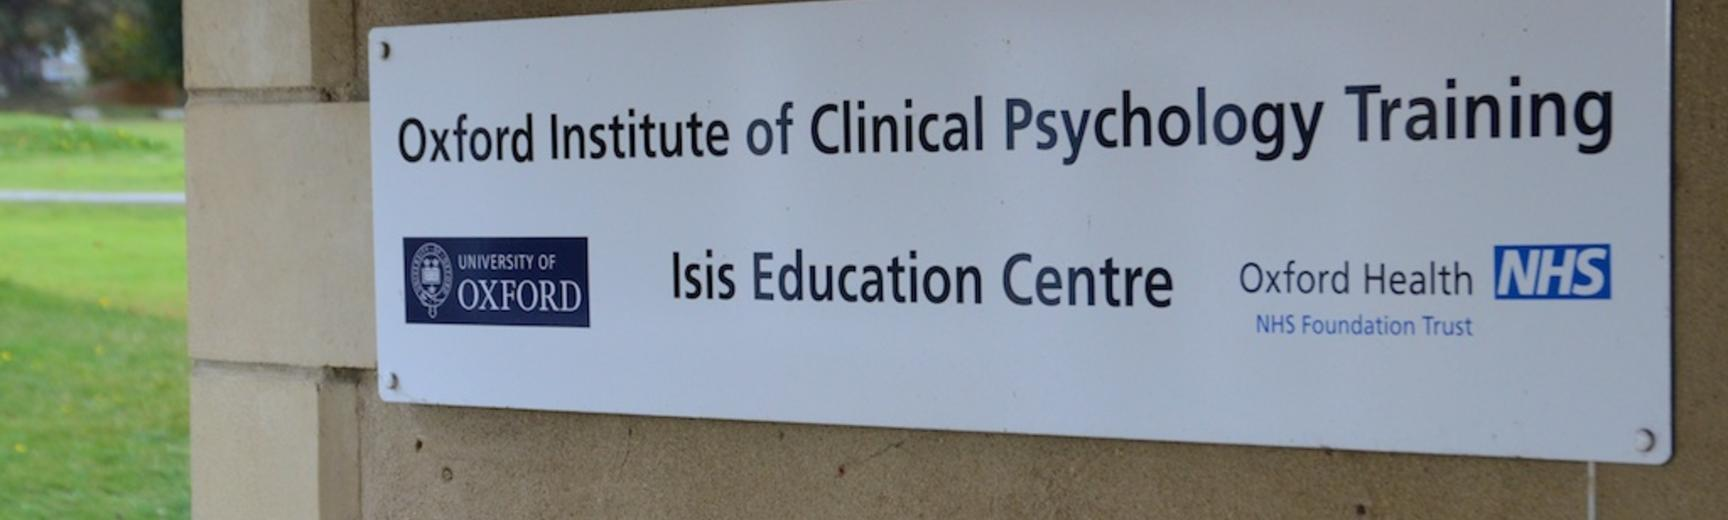 dclinpsych sign